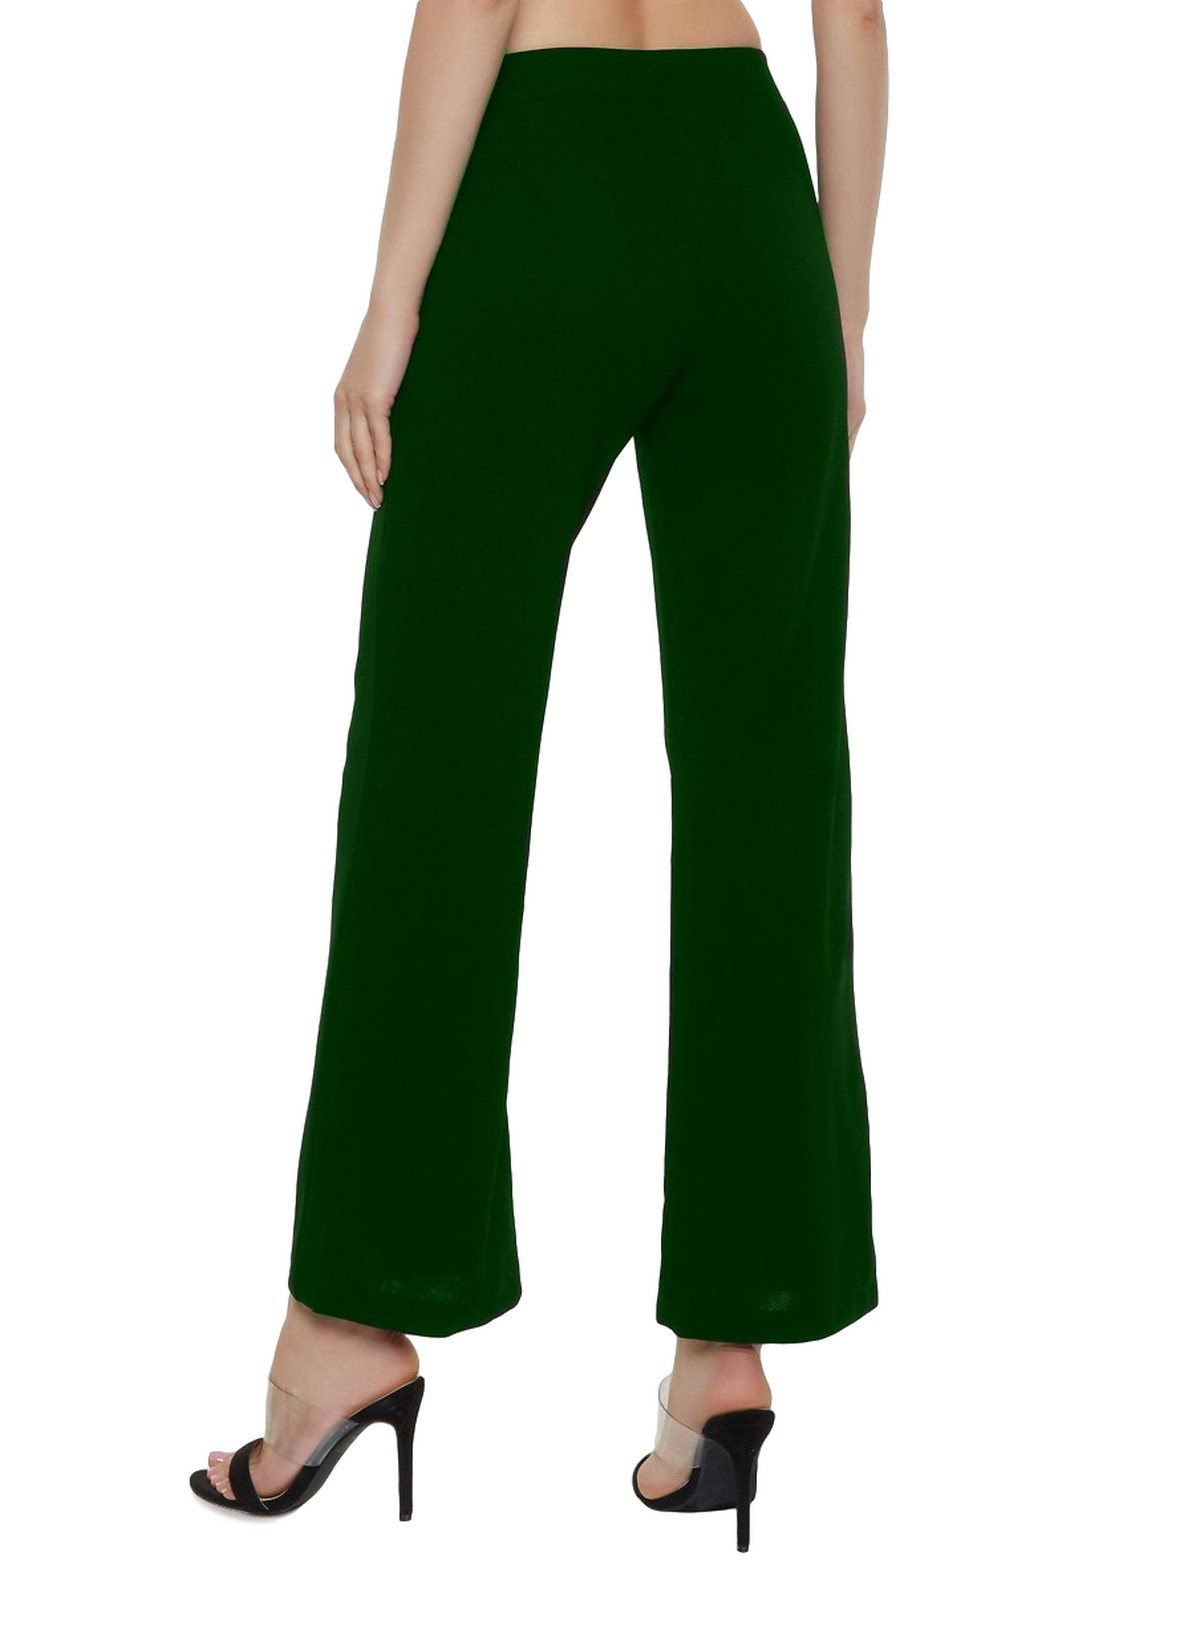 Slim Fit Culottes Trousers in Bottle Green